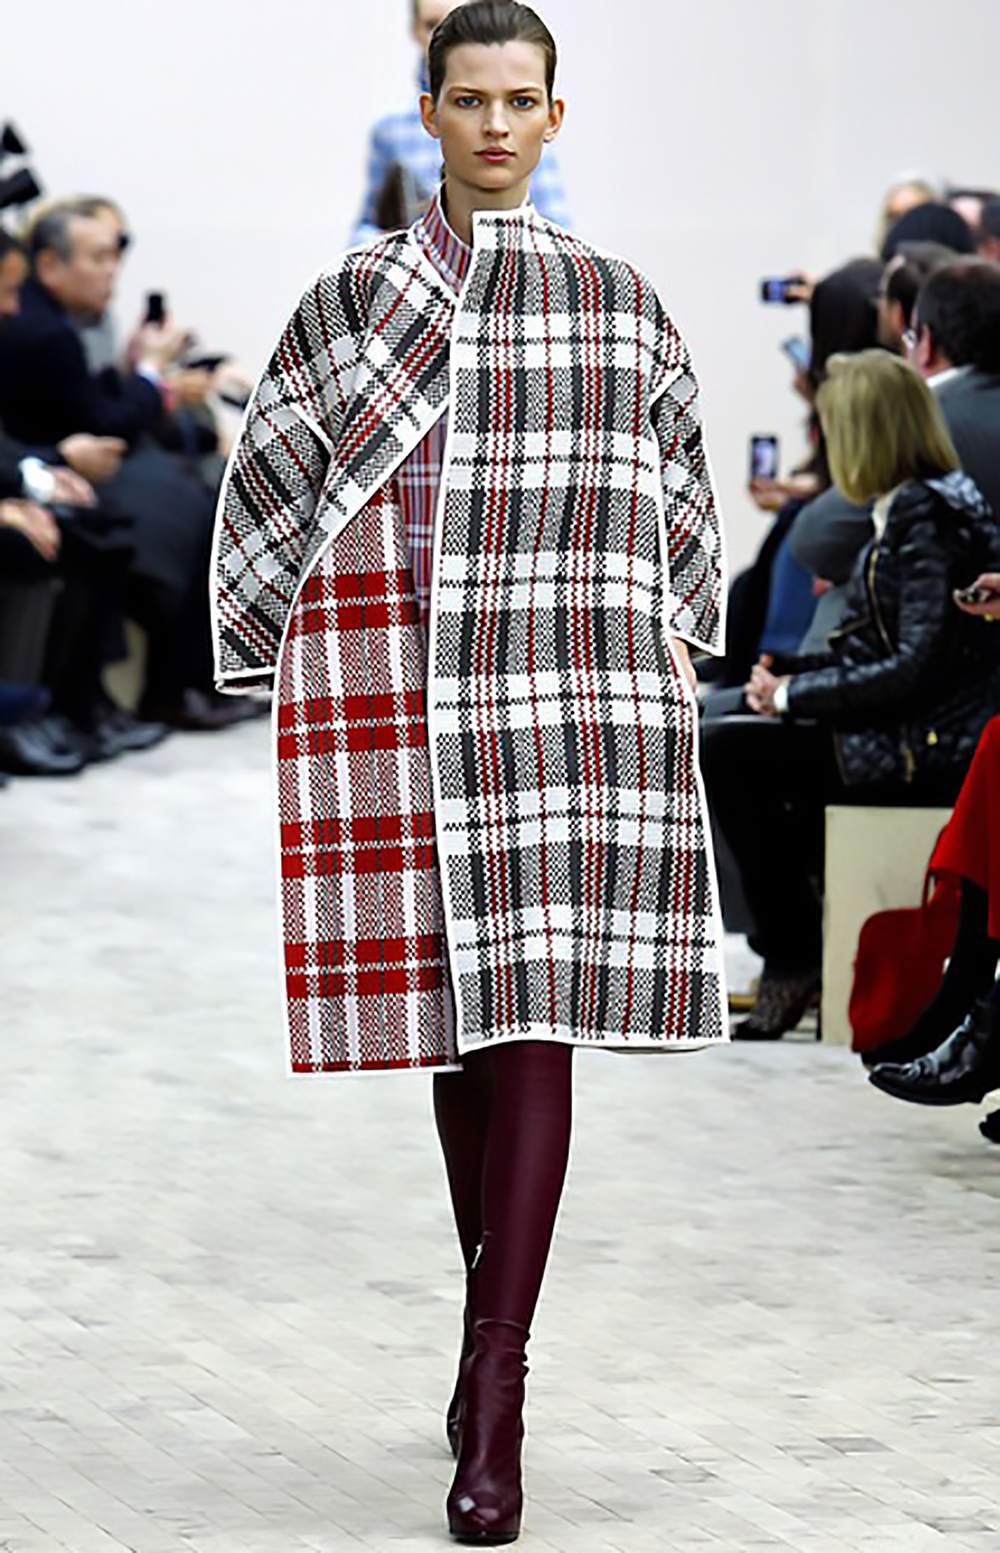 style.com celine fall '13 rtw look 22 plaid 1500.jpg